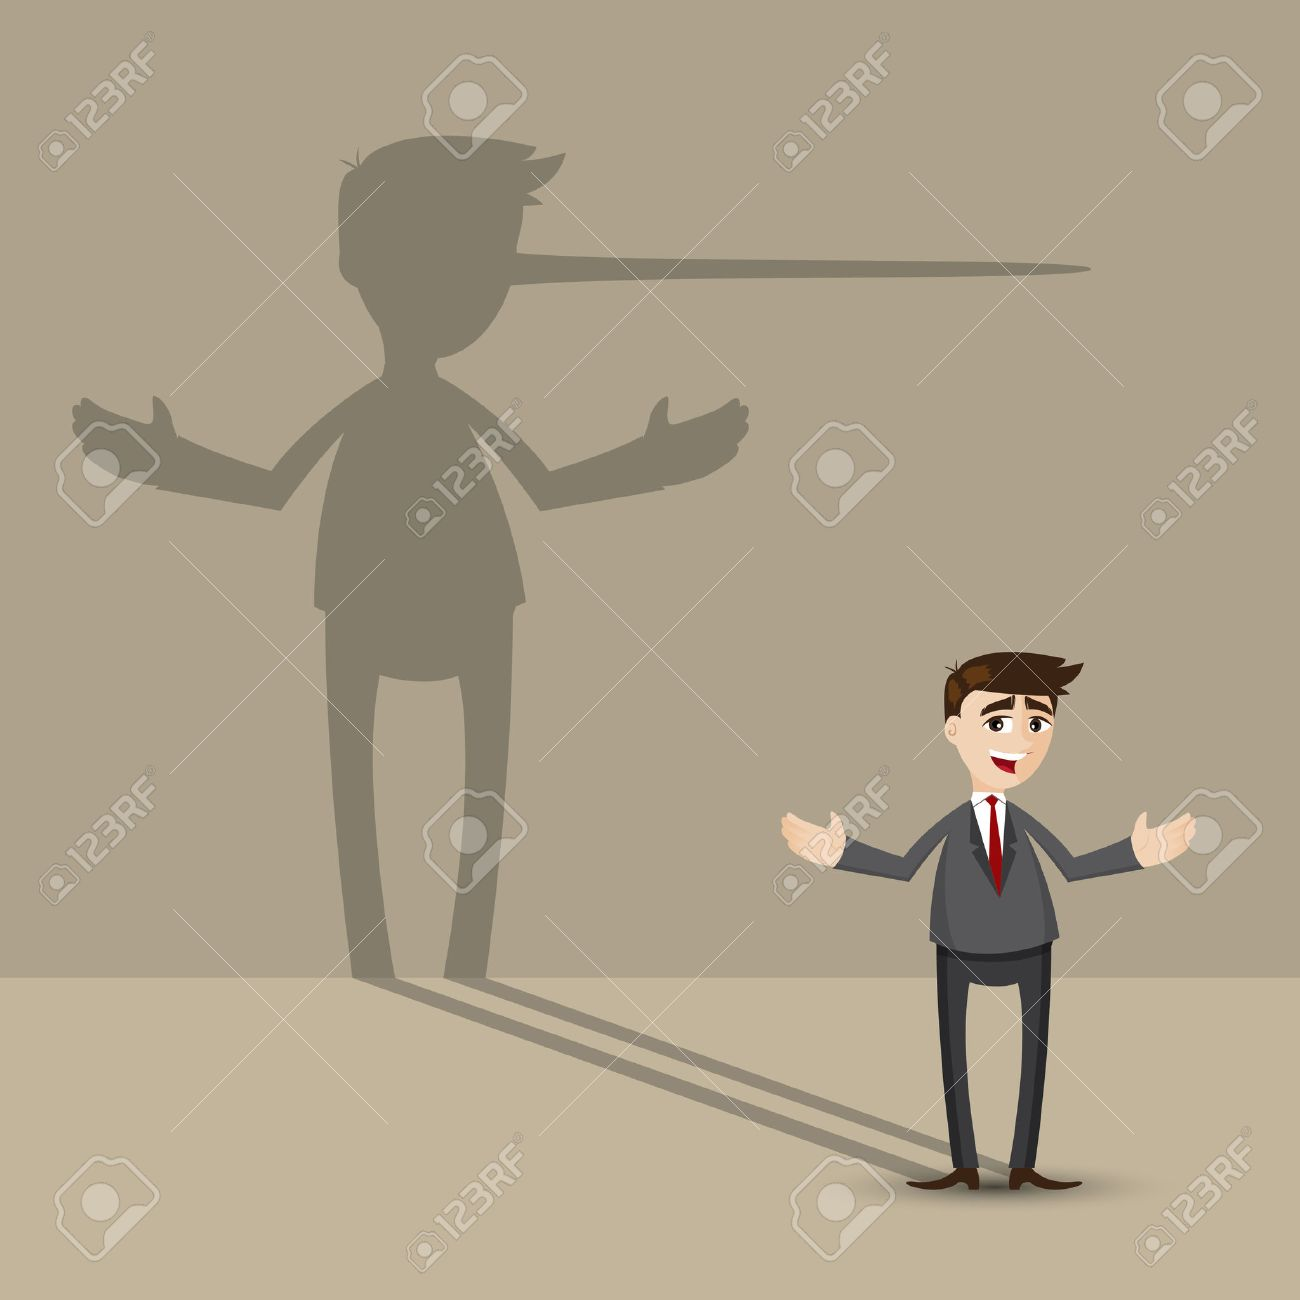 illustration of cartoon businessman with long nose shadow on wall in lying concept - 28638009